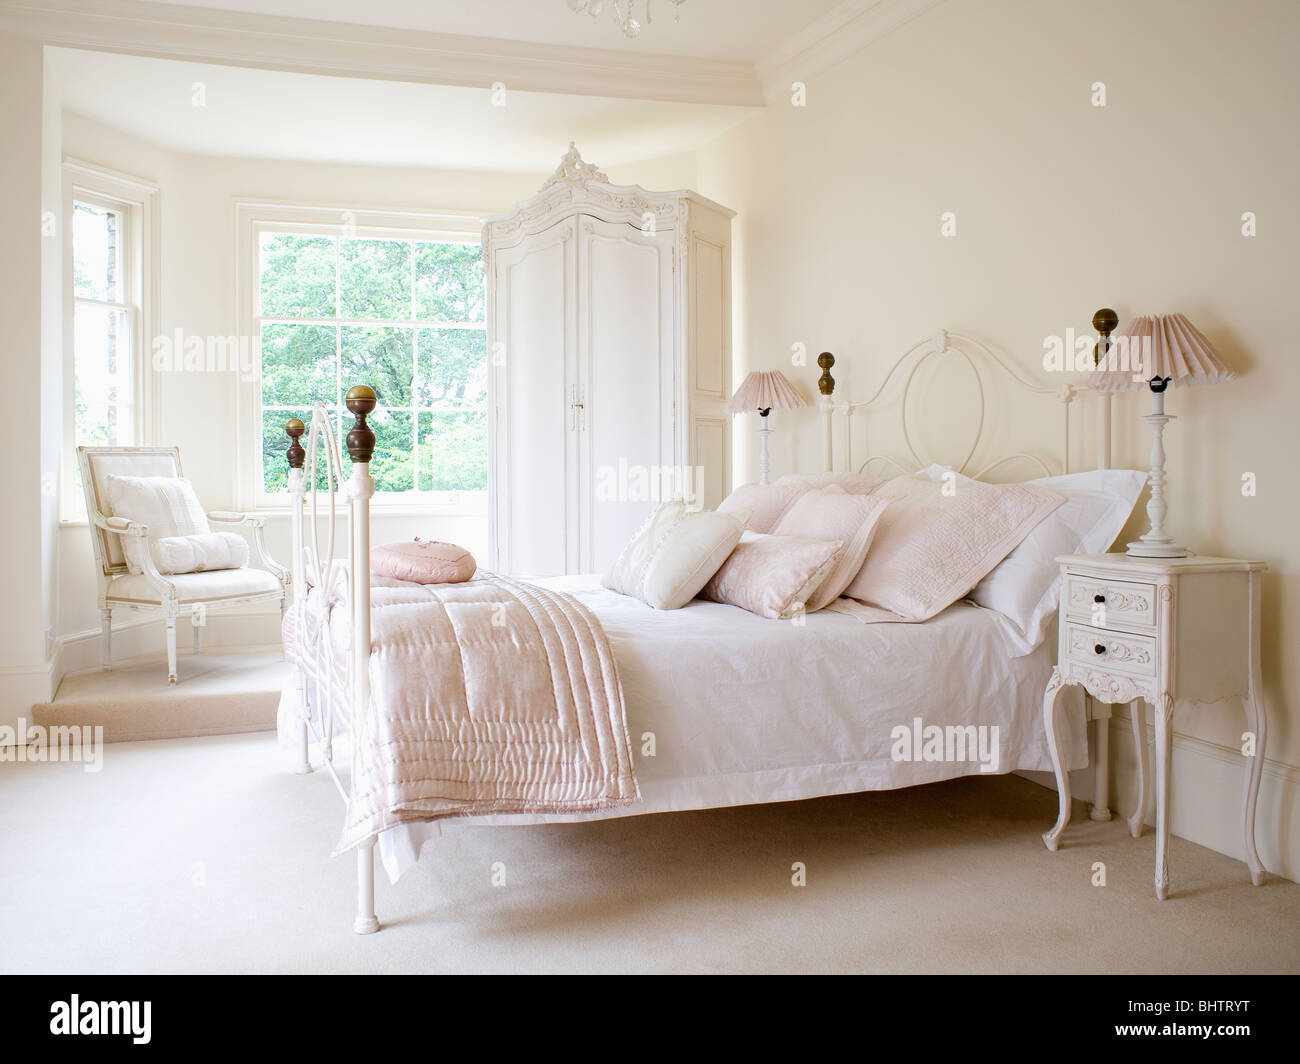 Pale pink silk quilt and white bedlinen on white wrought iron bed in ...